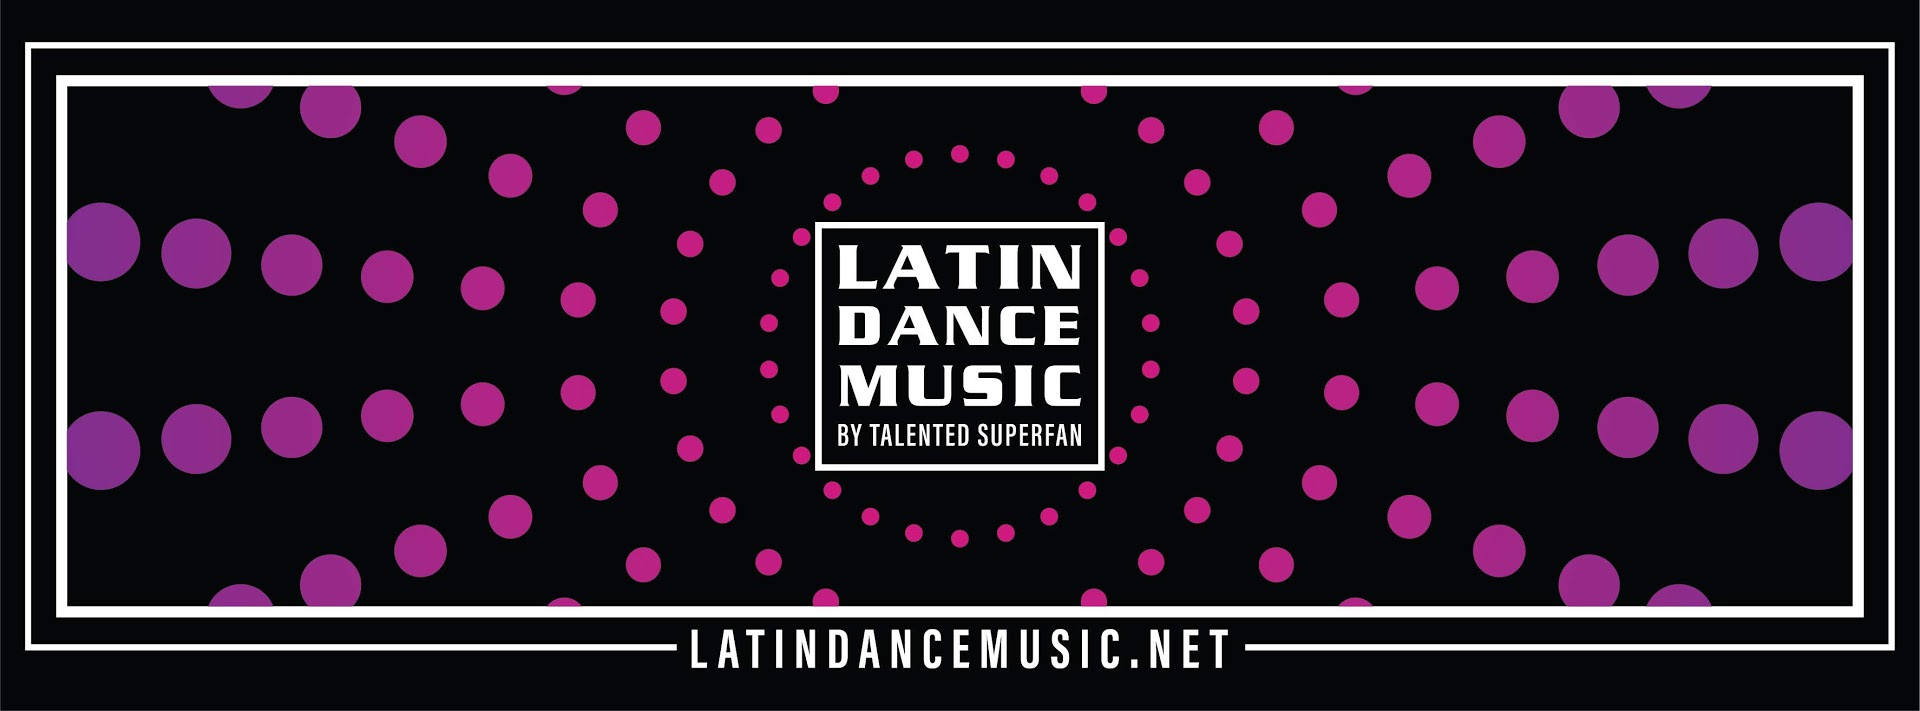 Latin Dance Music by Talented Superfan